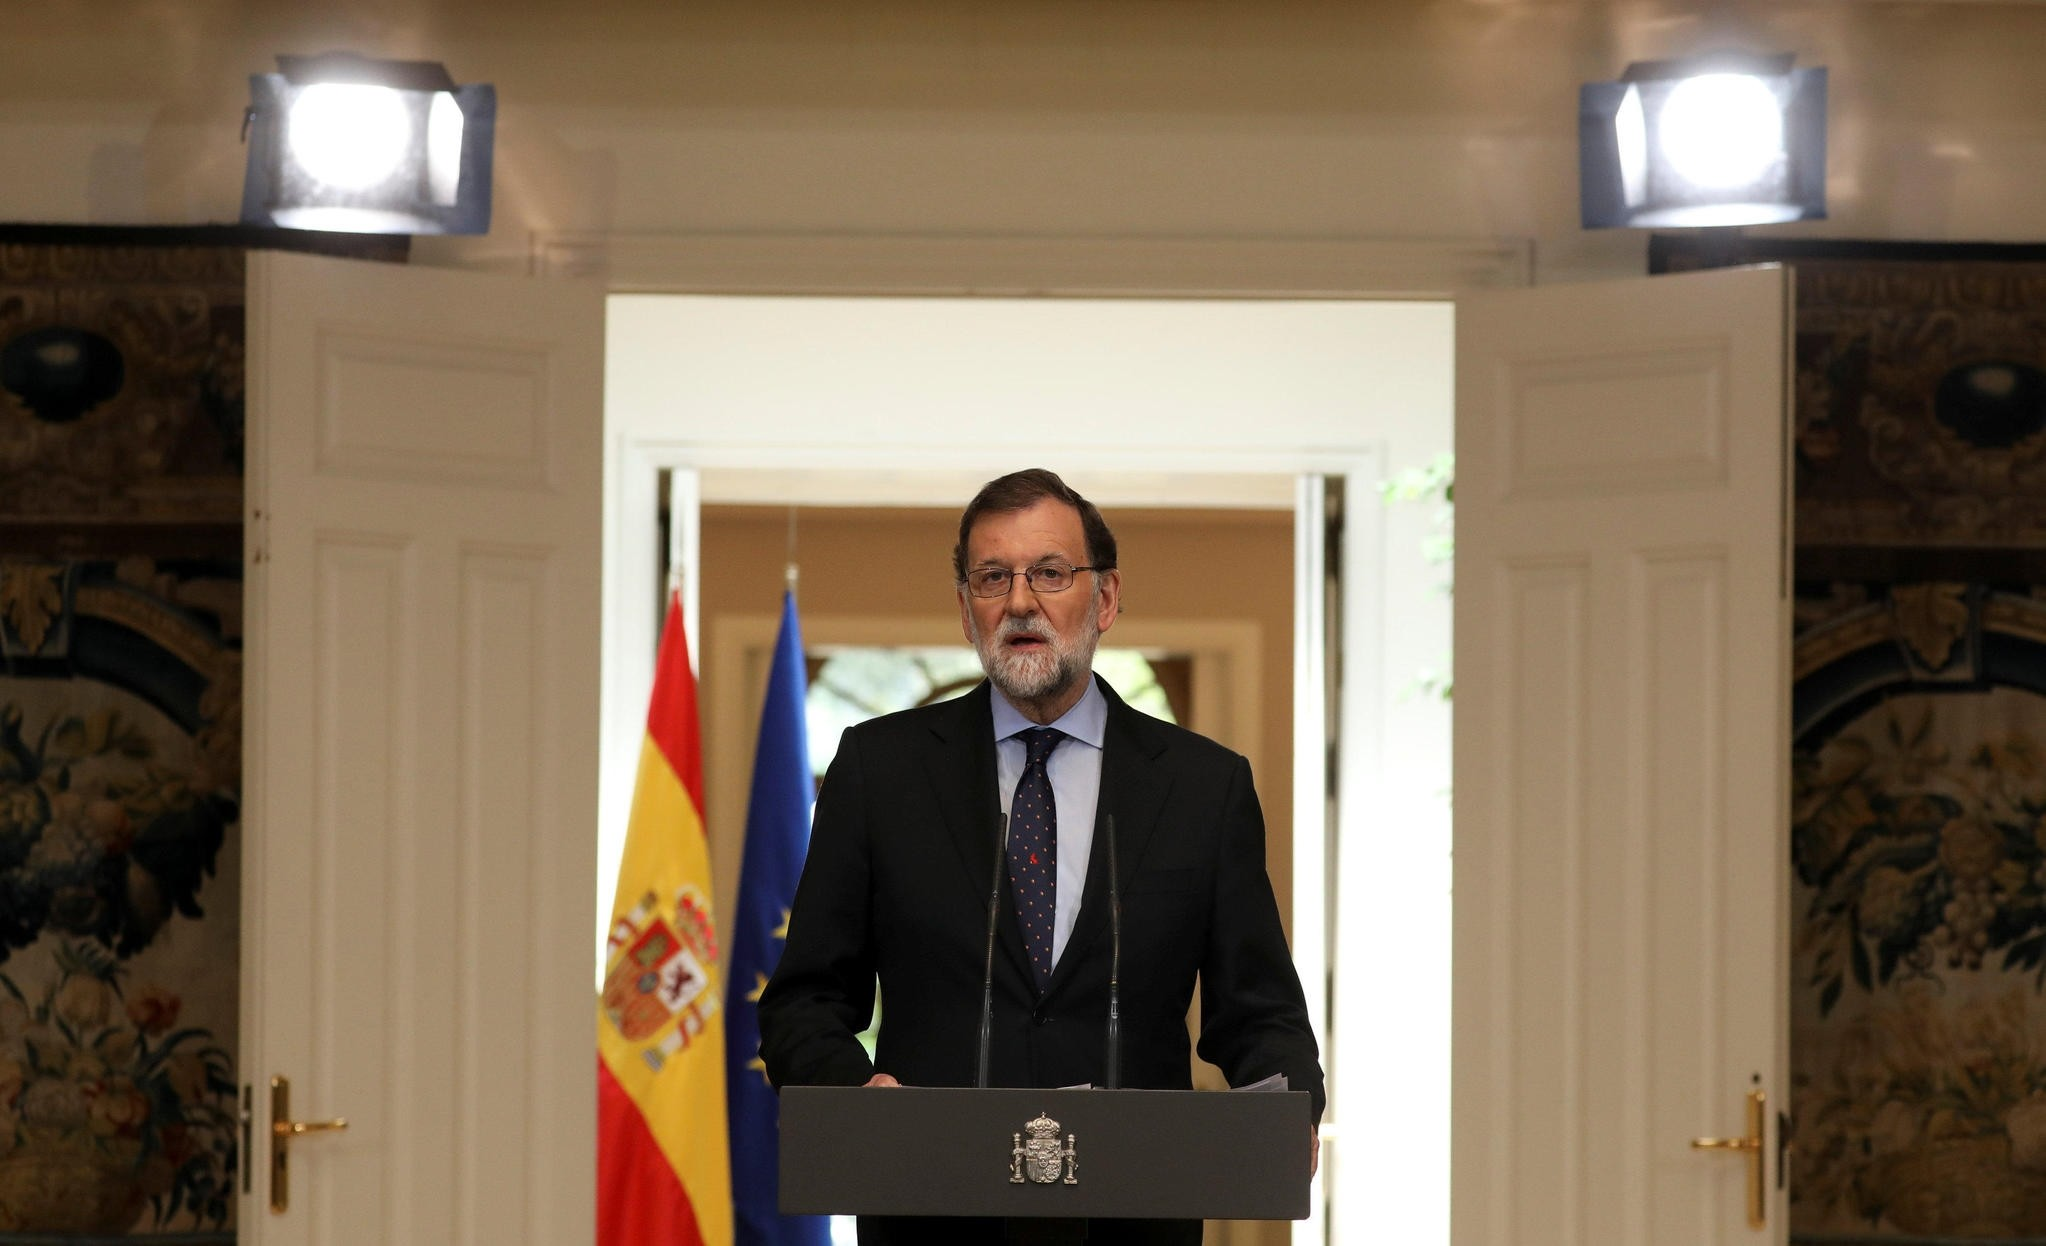 Spain's Prime Minister Mariano Rajoy delivers a speech regarding the dissolution of Basque separatist group ETA at the Moncloa Palace in Madrid, Spain, May 4, 2018.  (REUTERS Photo)